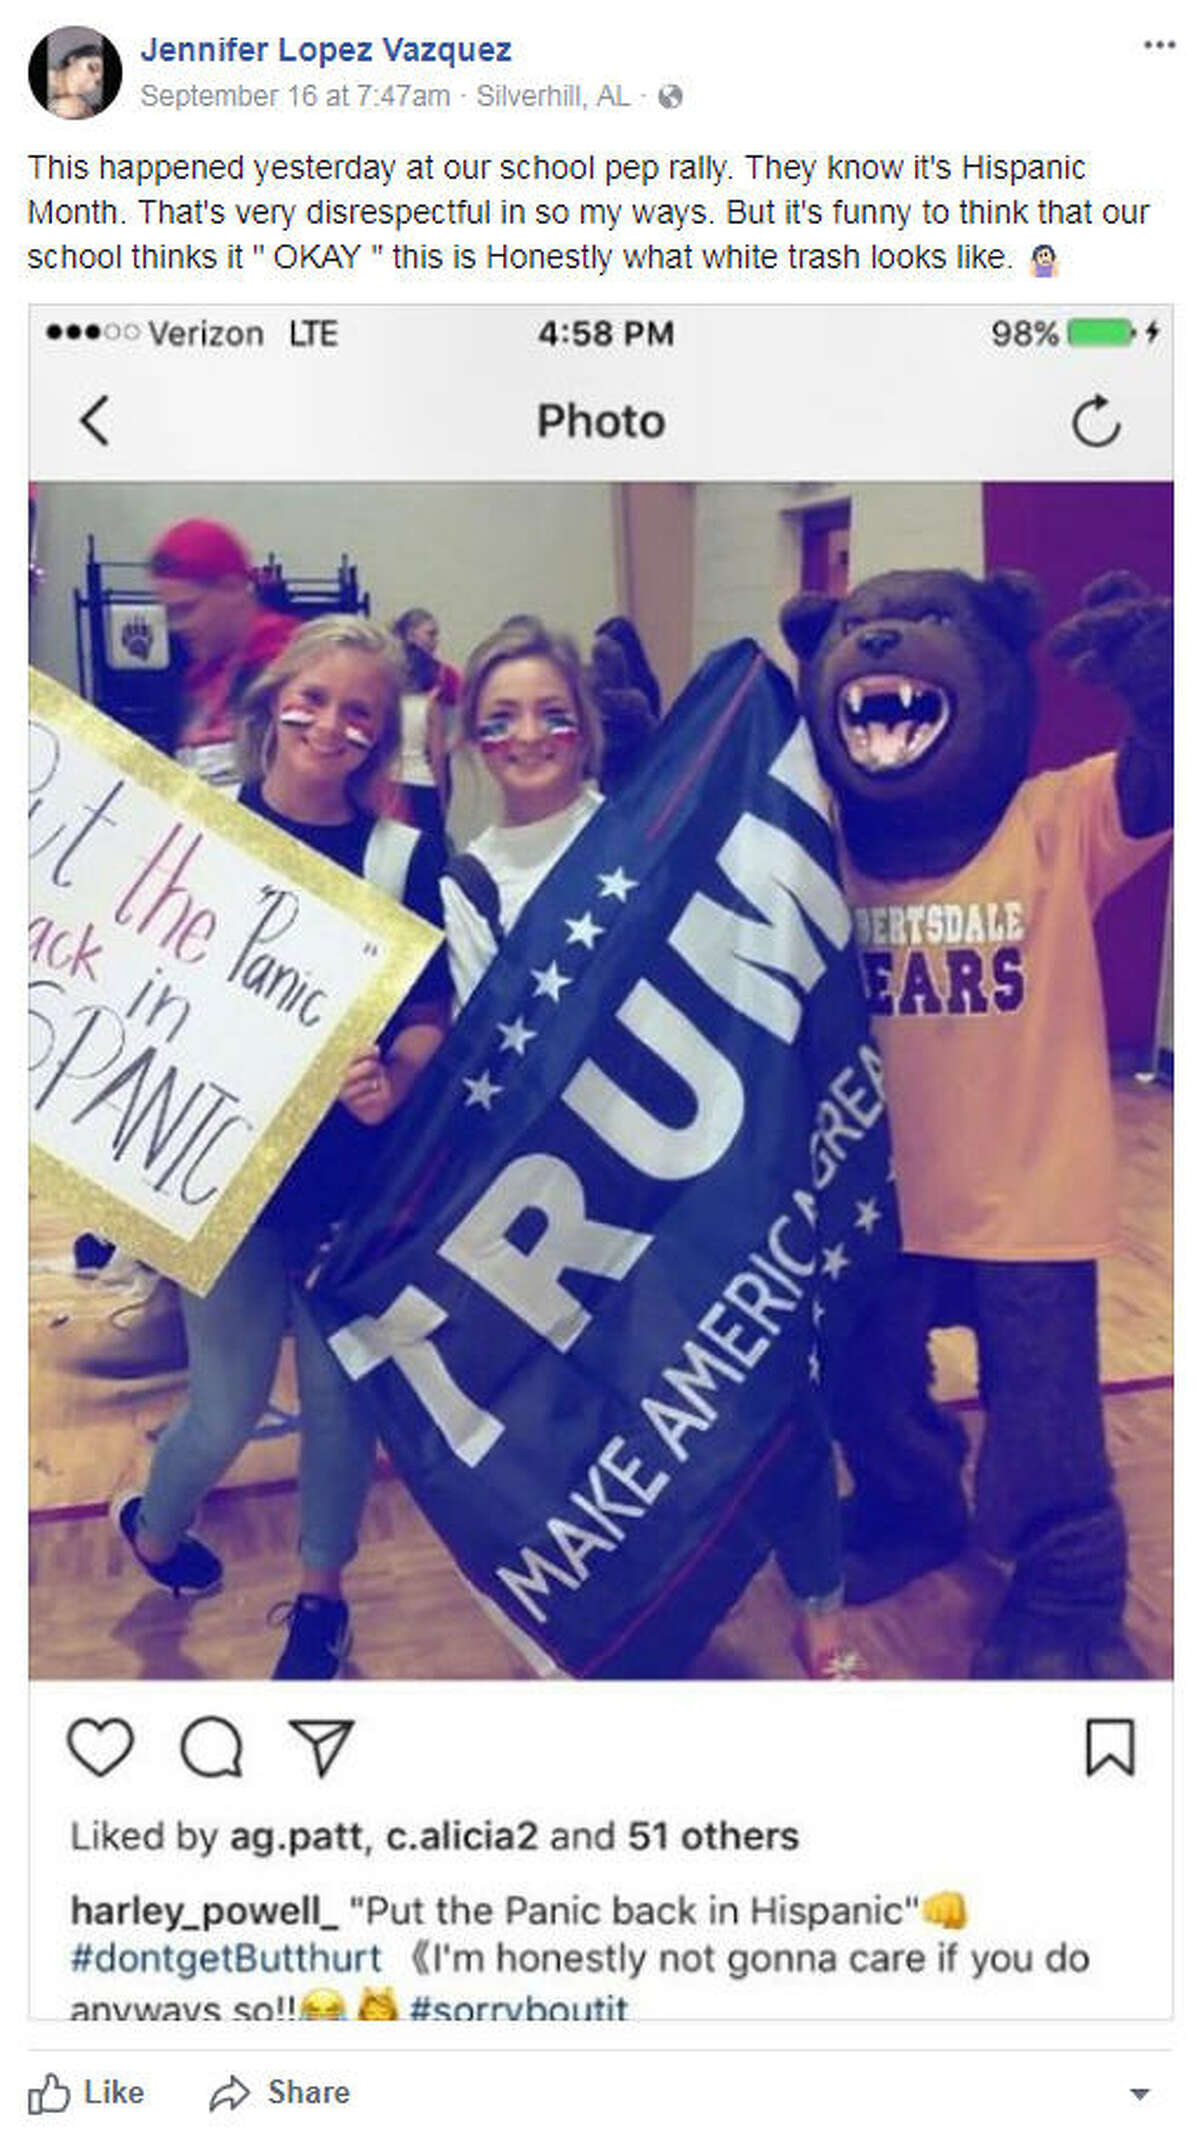 Jennifer Vazquez shared a photo that was reportedly taken at Robertsdale High School in Alabama, where a student had the sign,